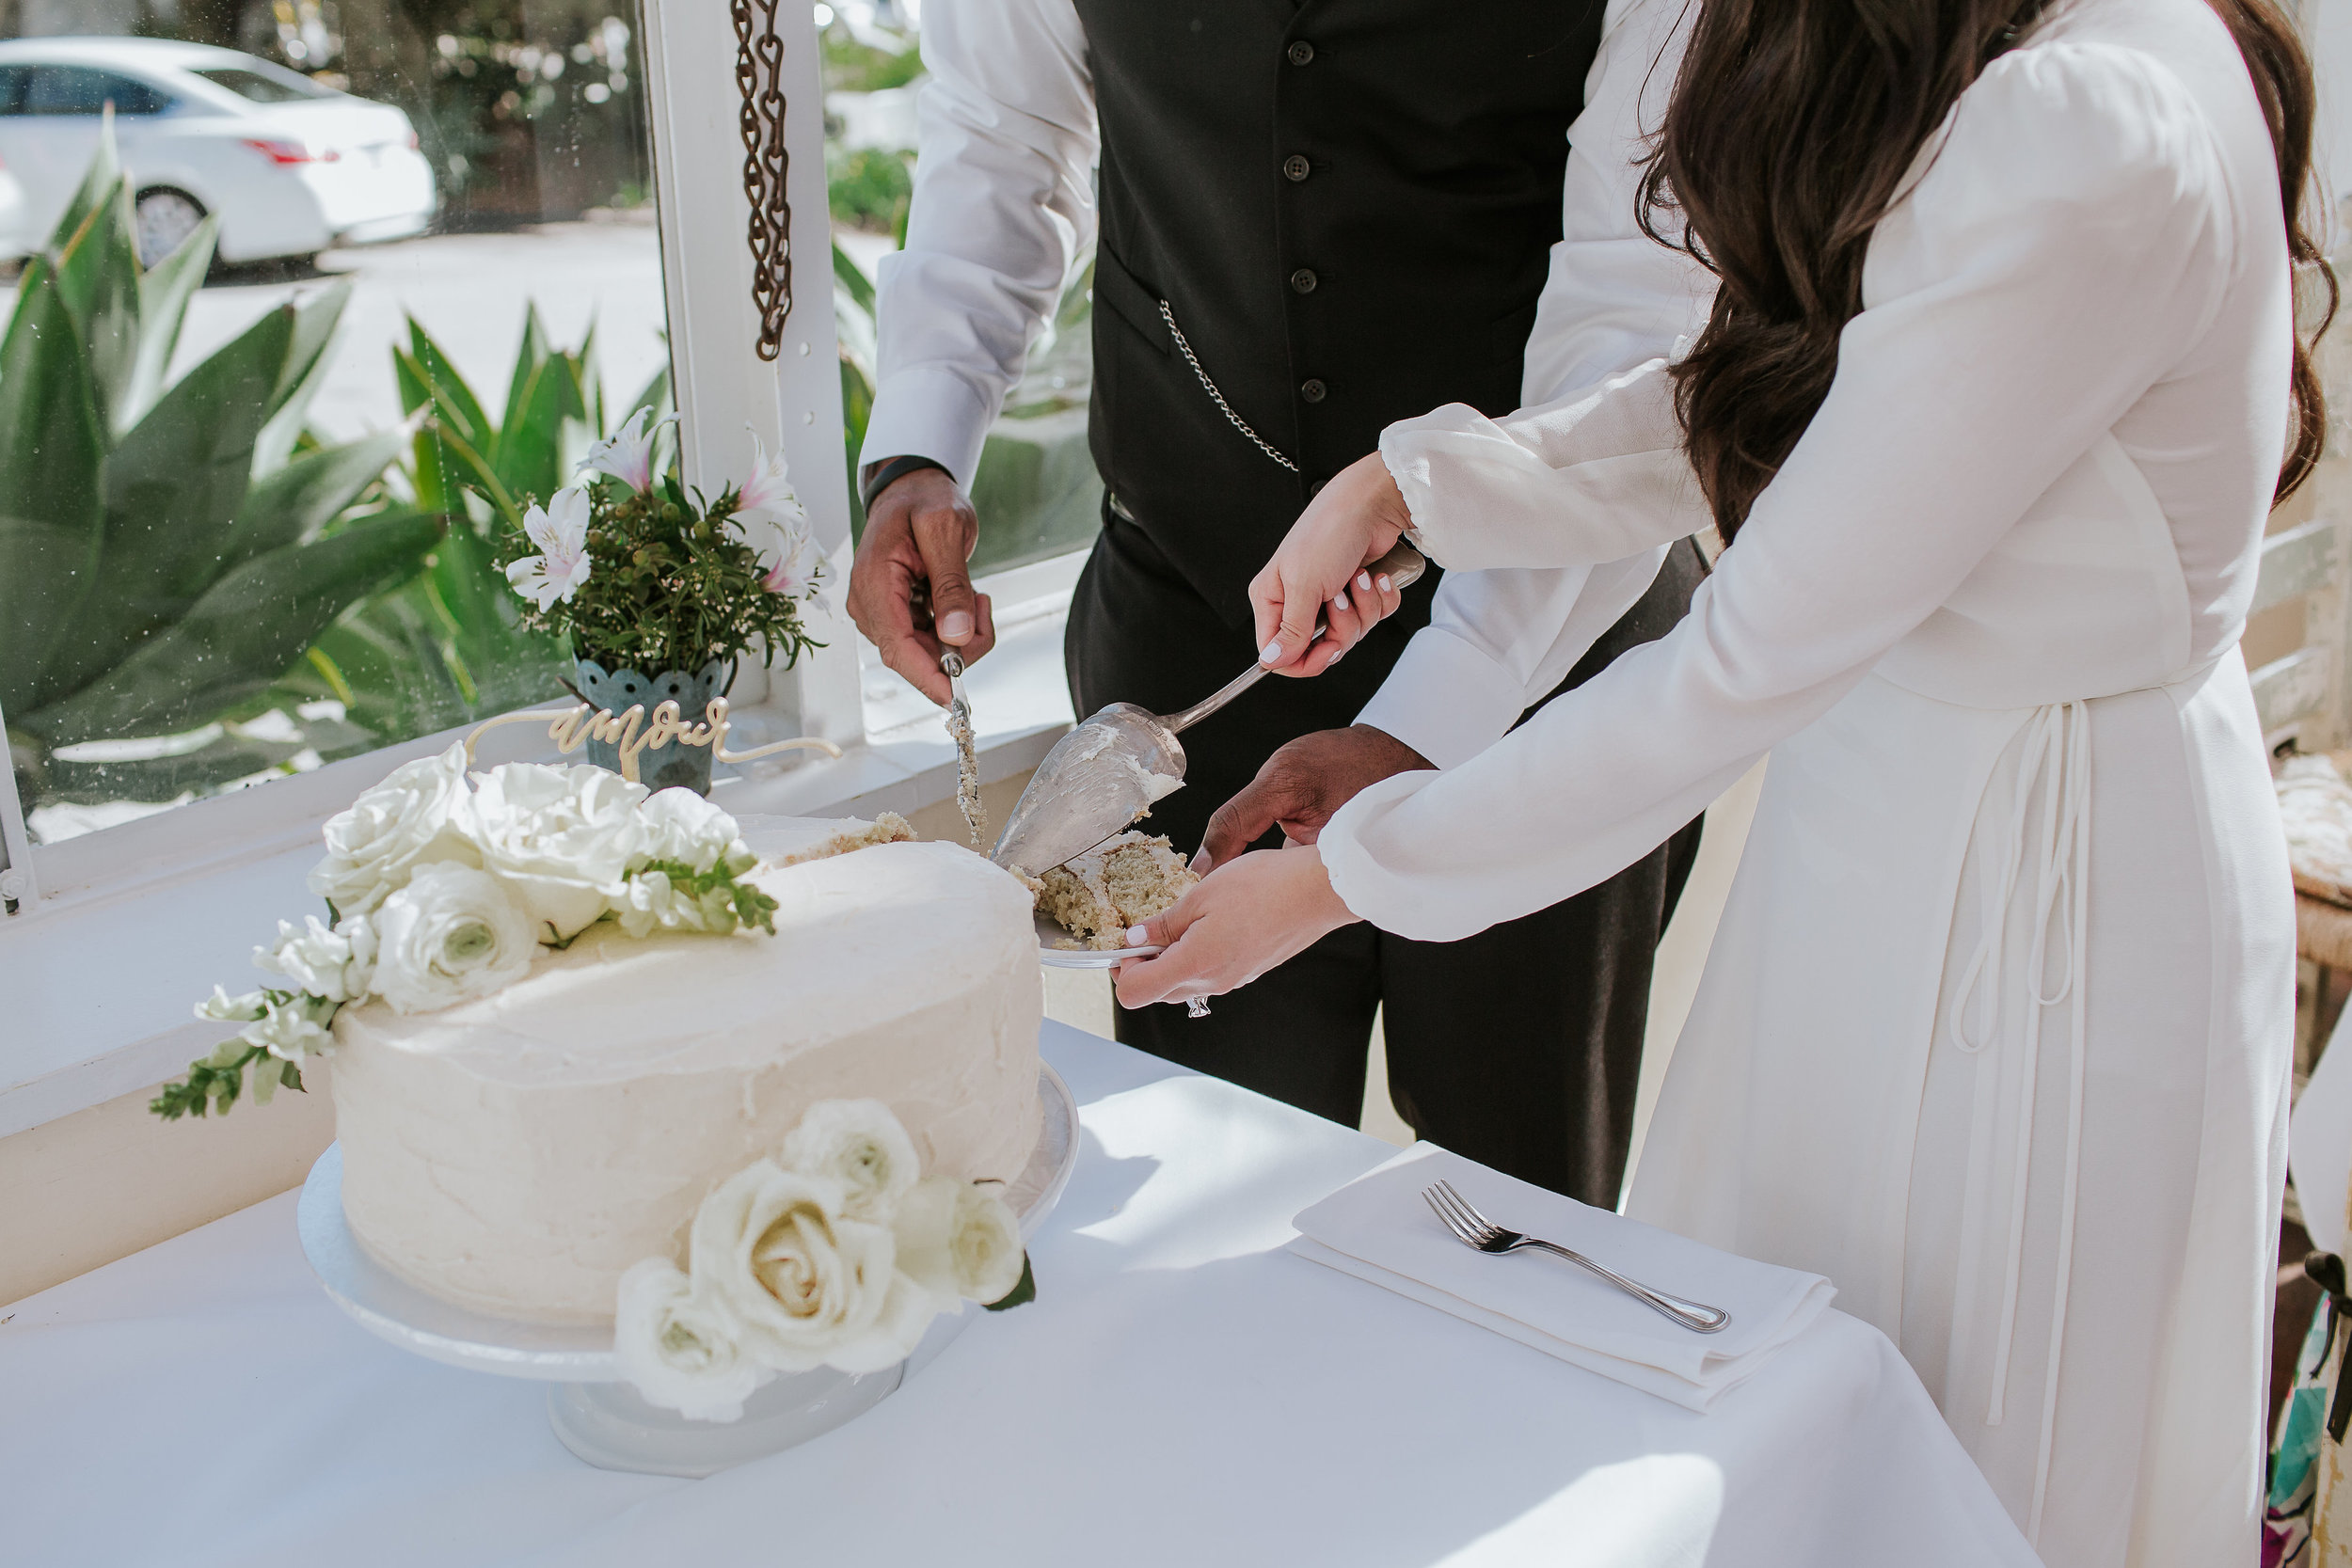 GabrielaandDeJuansantabarbaracourthouseweddingstellamaresweddingelopement-434.jpg